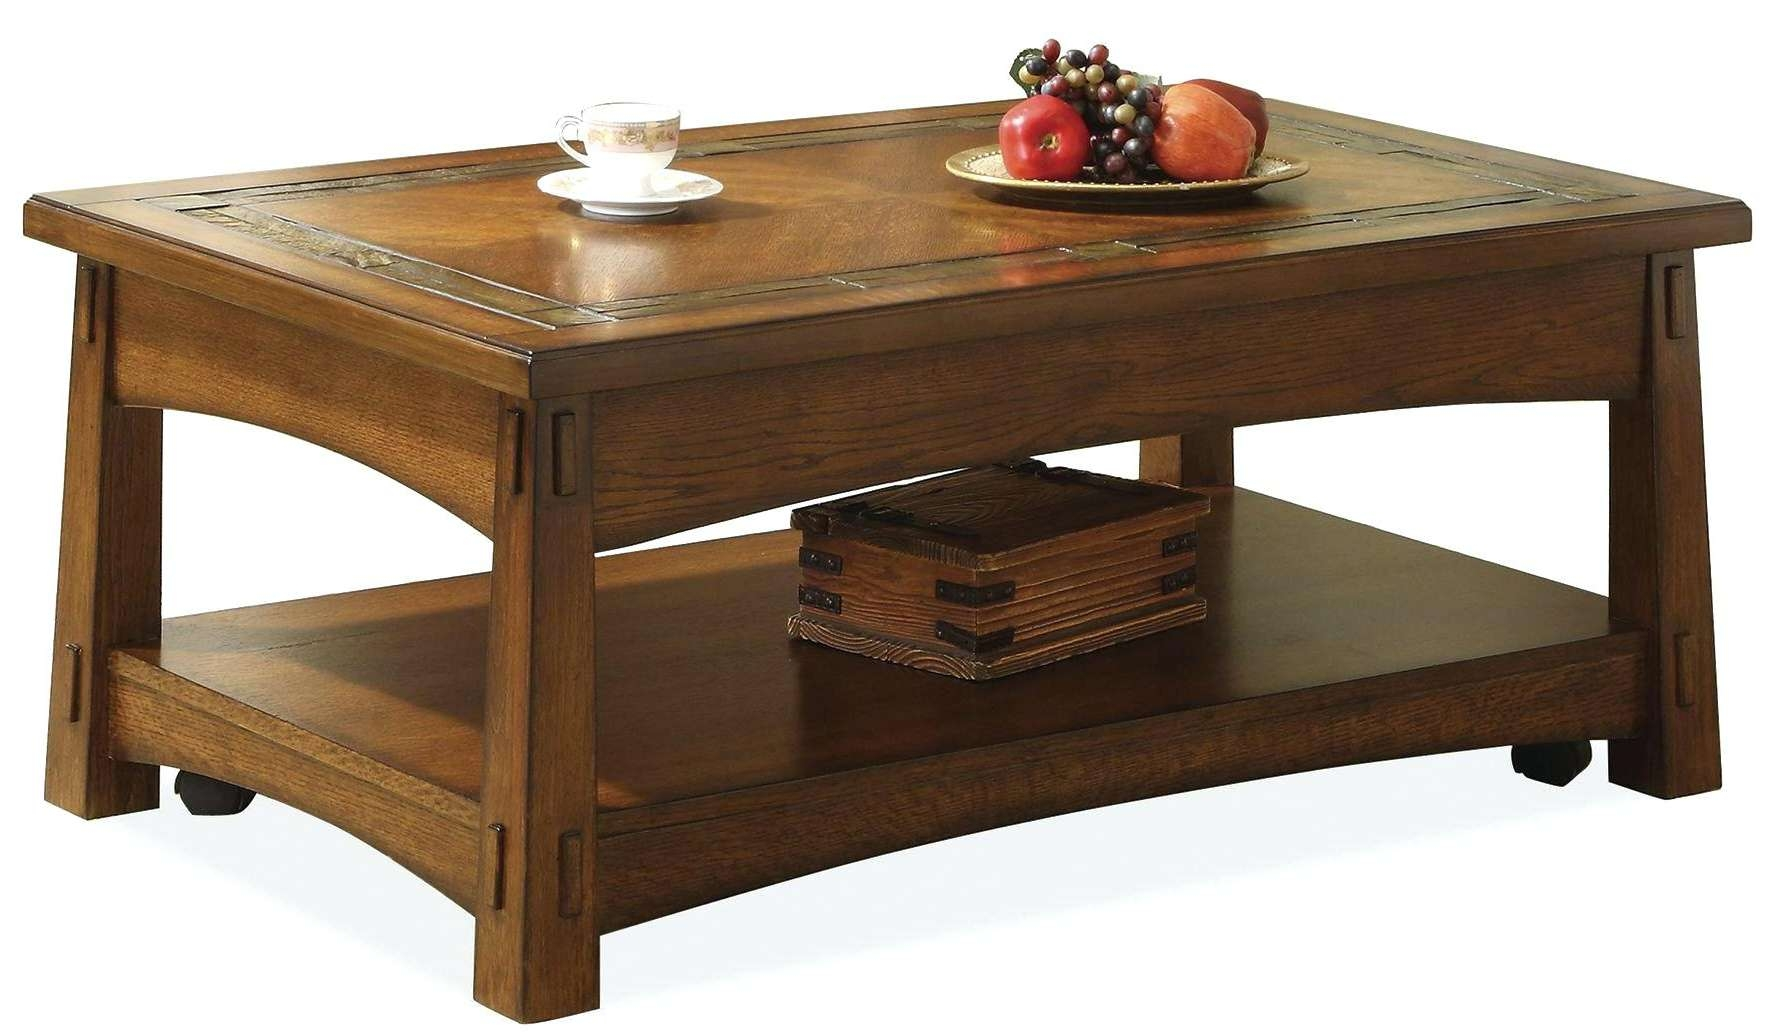 Craftsman Coffee Table Riverside Furniture Craftsman Home Lift Top With Regard To Recent Round Slate Top Coffee Tables (View 6 of 20)